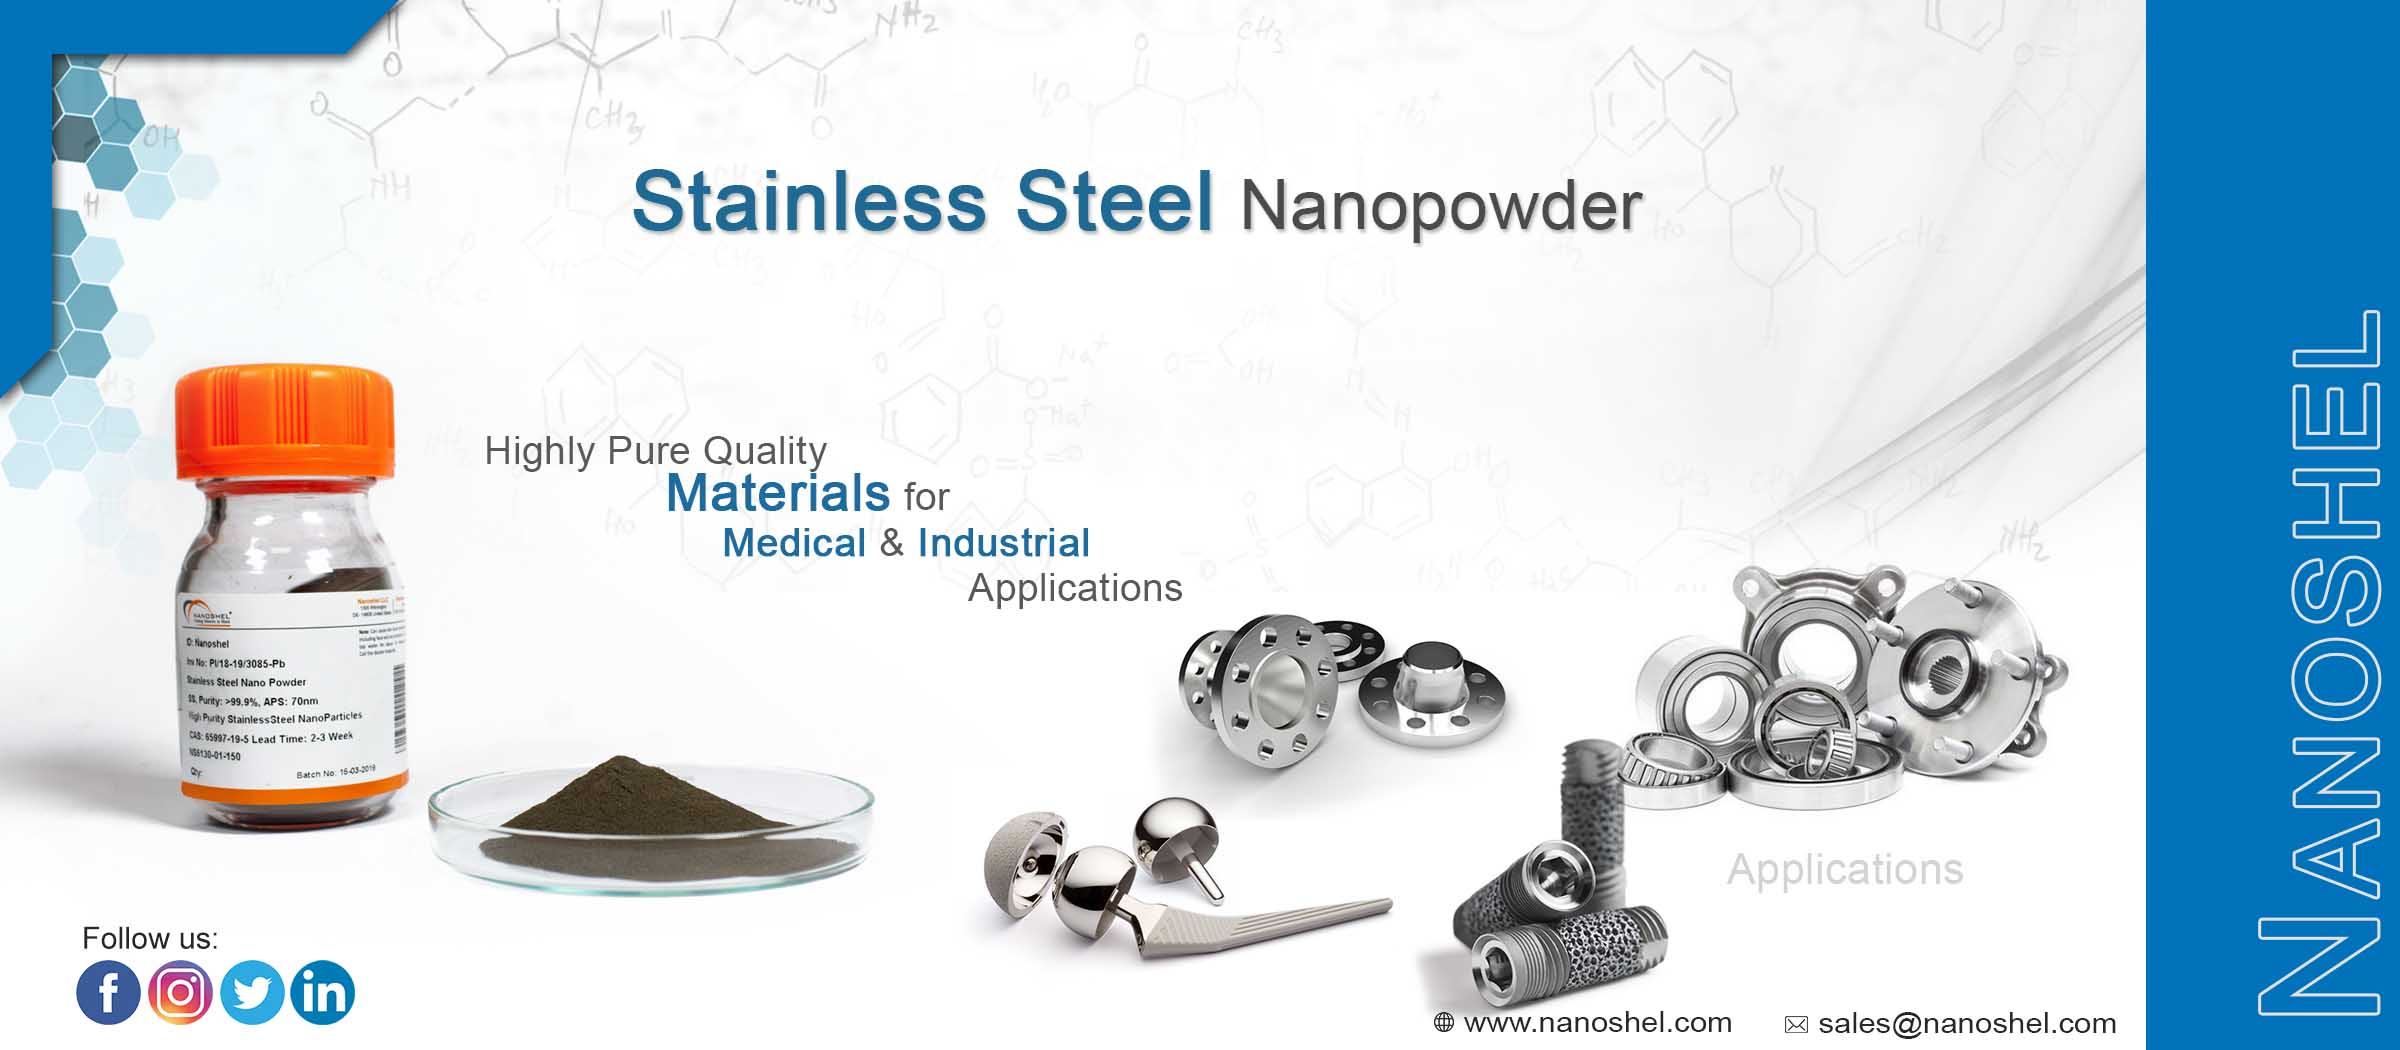 Stainless Steel Nanoparticles